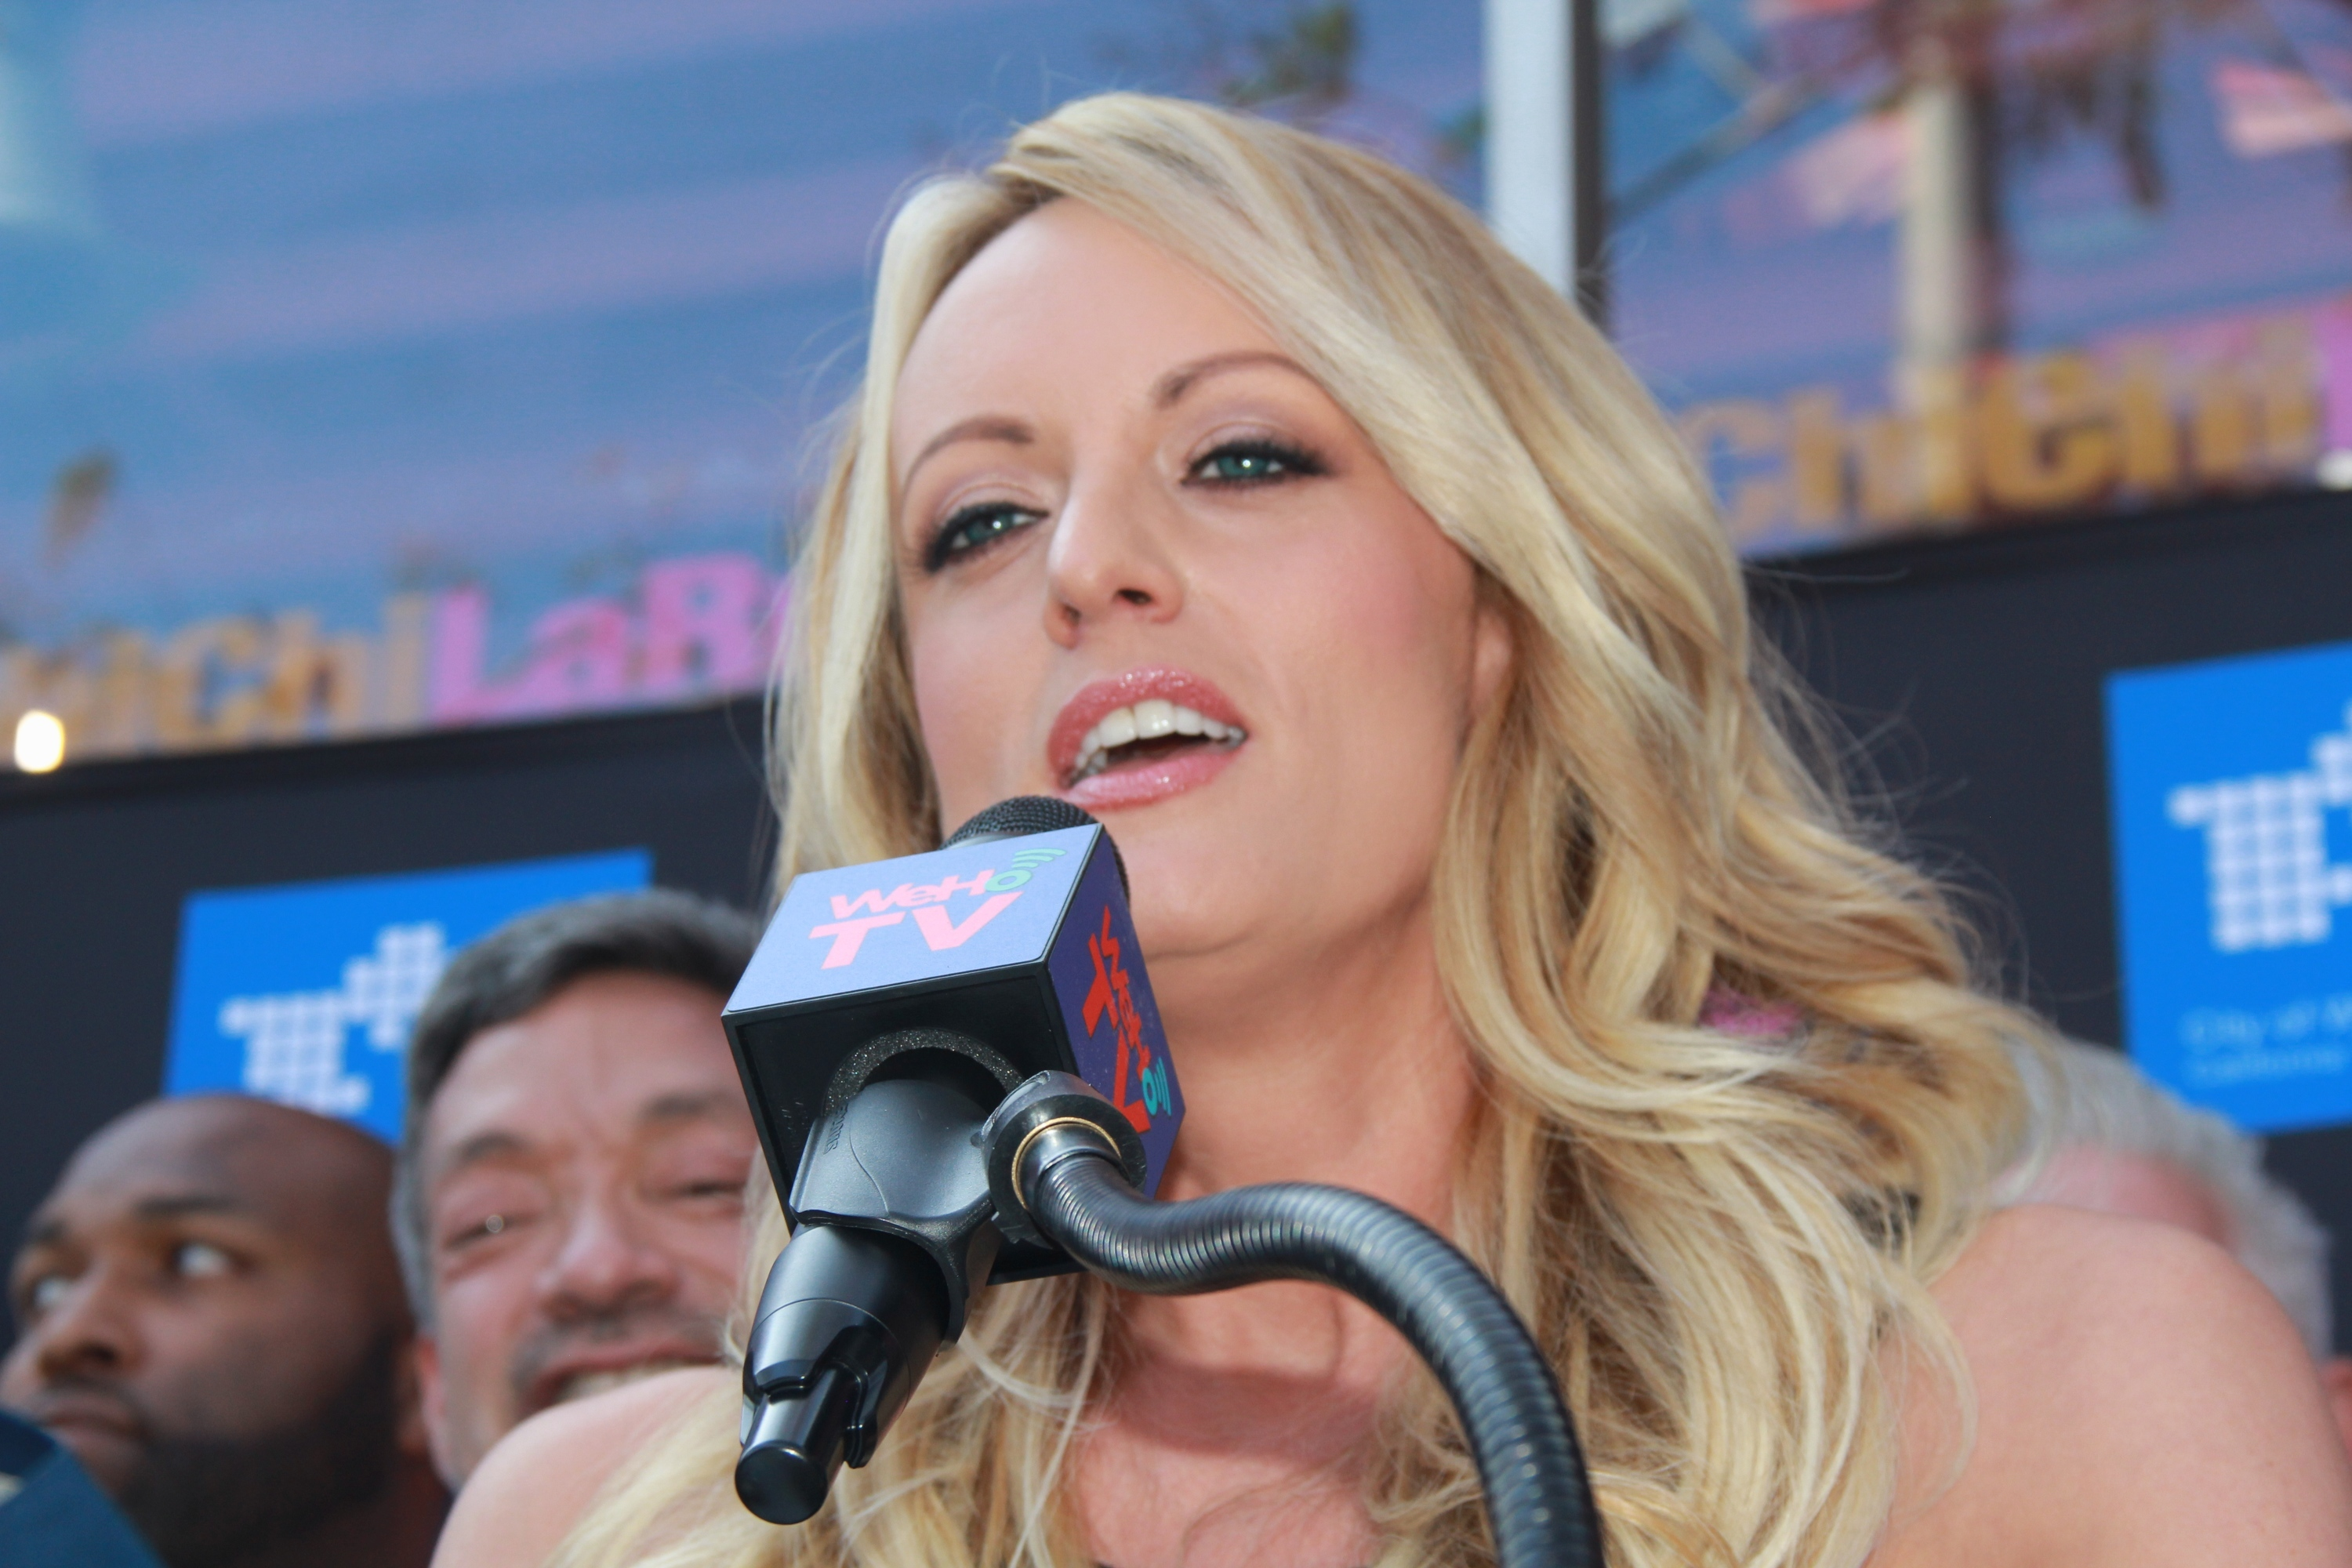 'Least impressive EVER' - Stormy Daniels reveals EXPLICIT details about Trump encounter